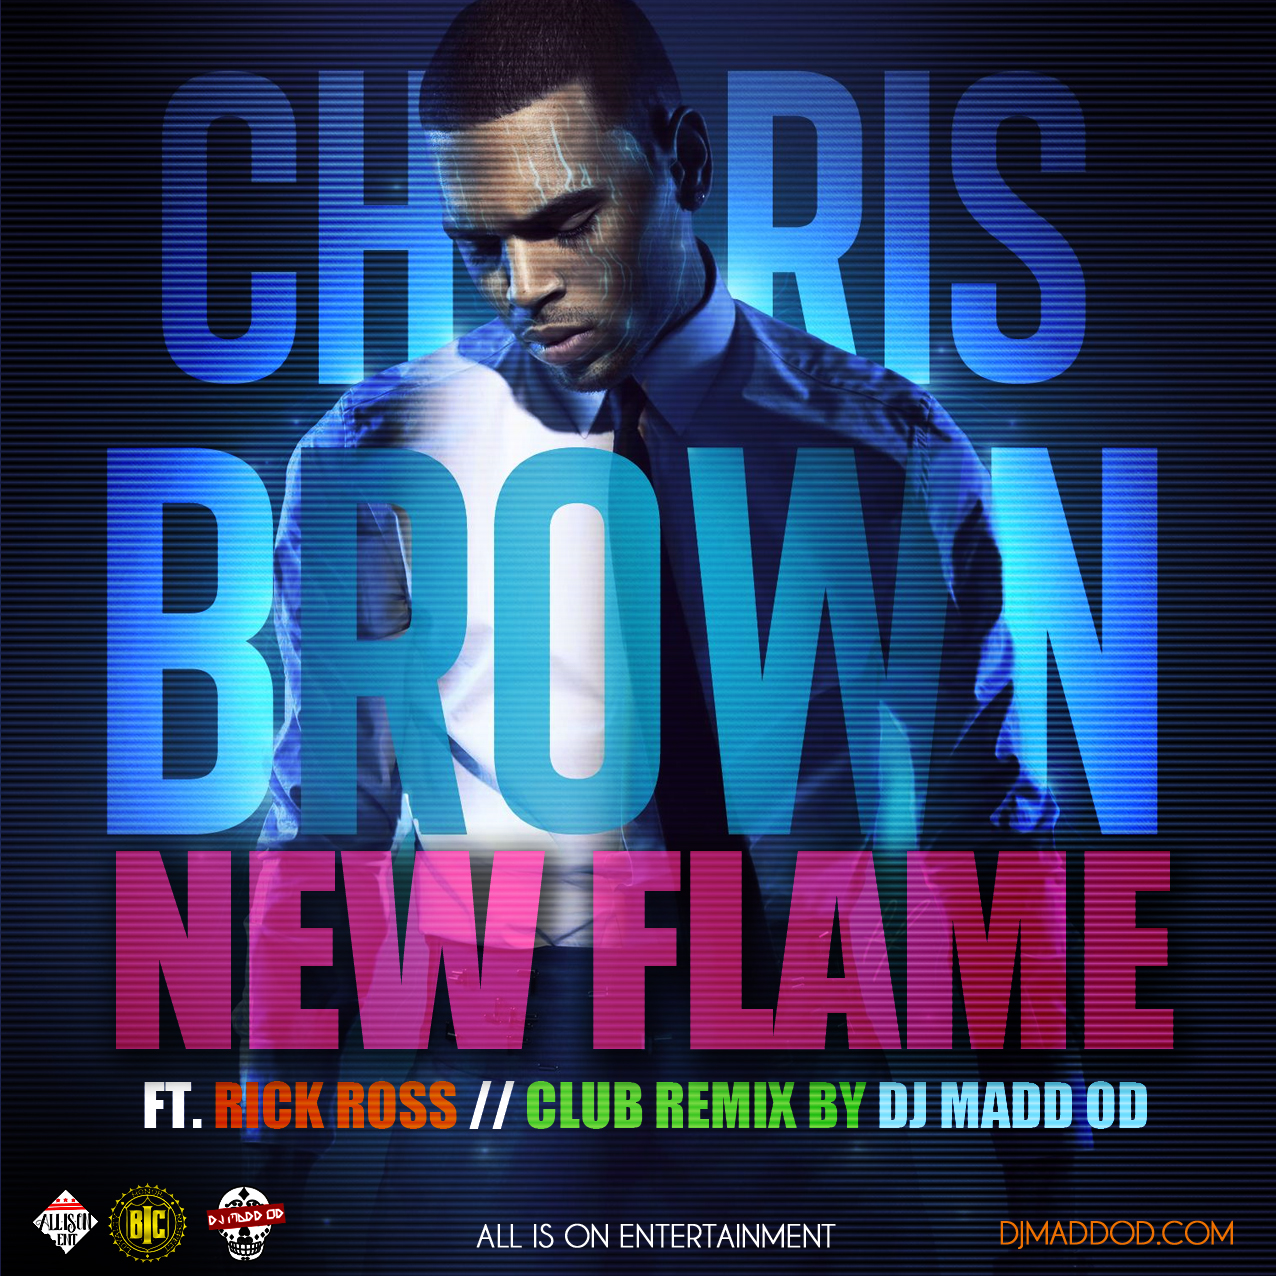 CHRIS BROWN (@chrisbrownofficial) Instagram photos and videos